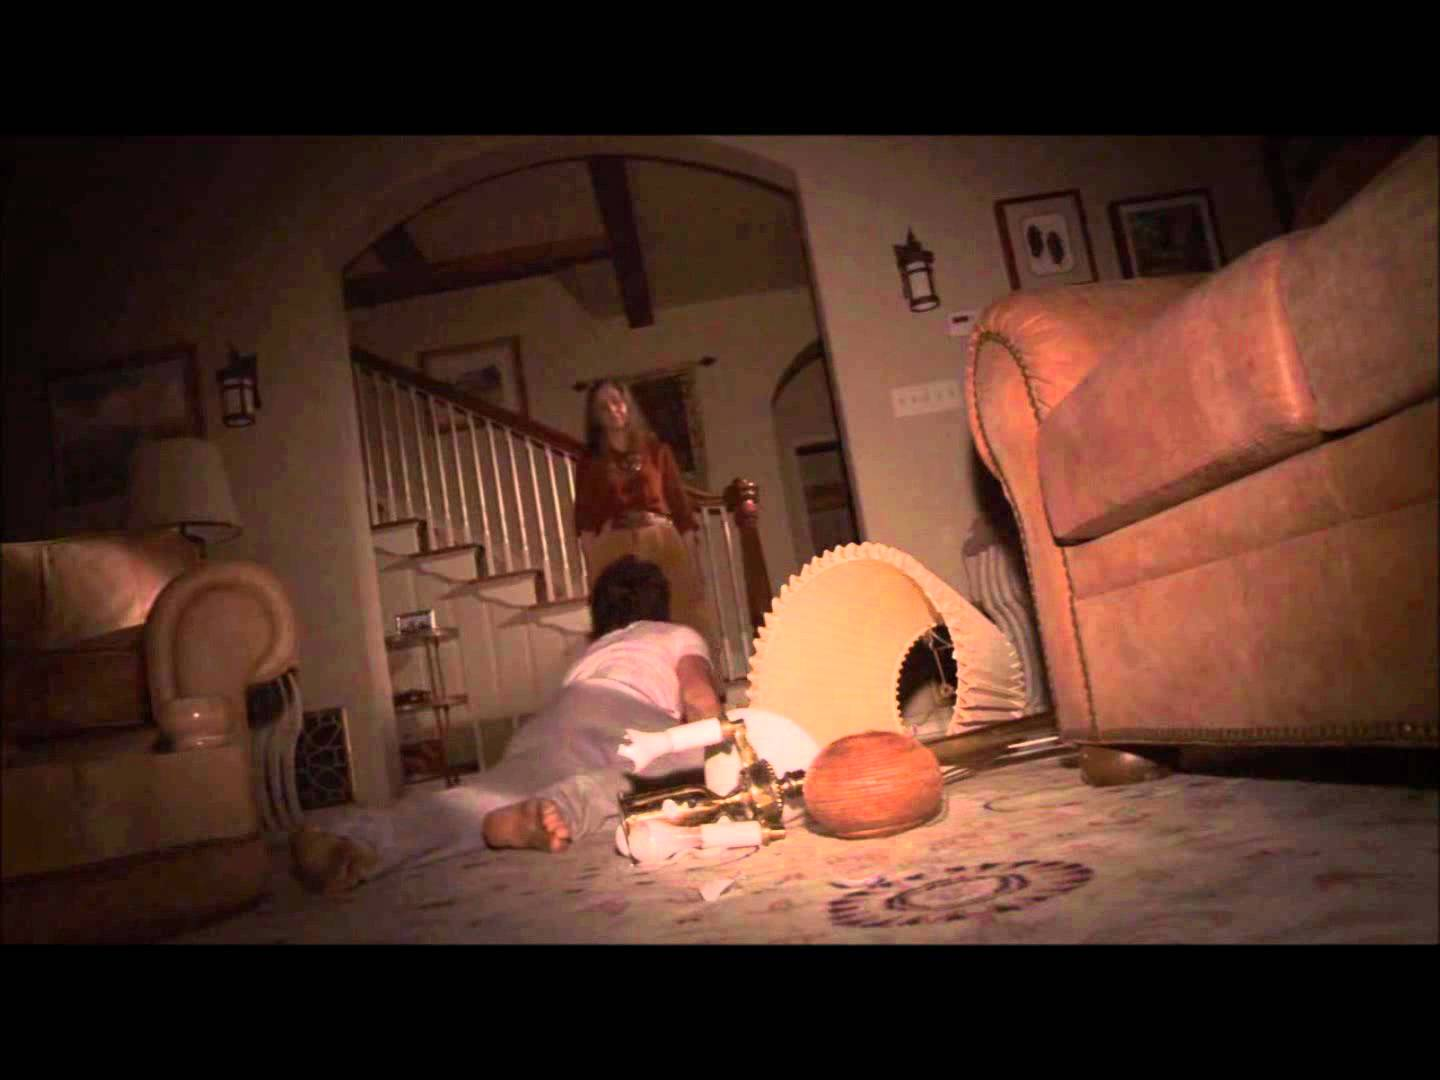 Paranormal Activity 3 Wallpapers Movie Hq Paranormal Activity 3 Pictures 4k Wallpapers 2019